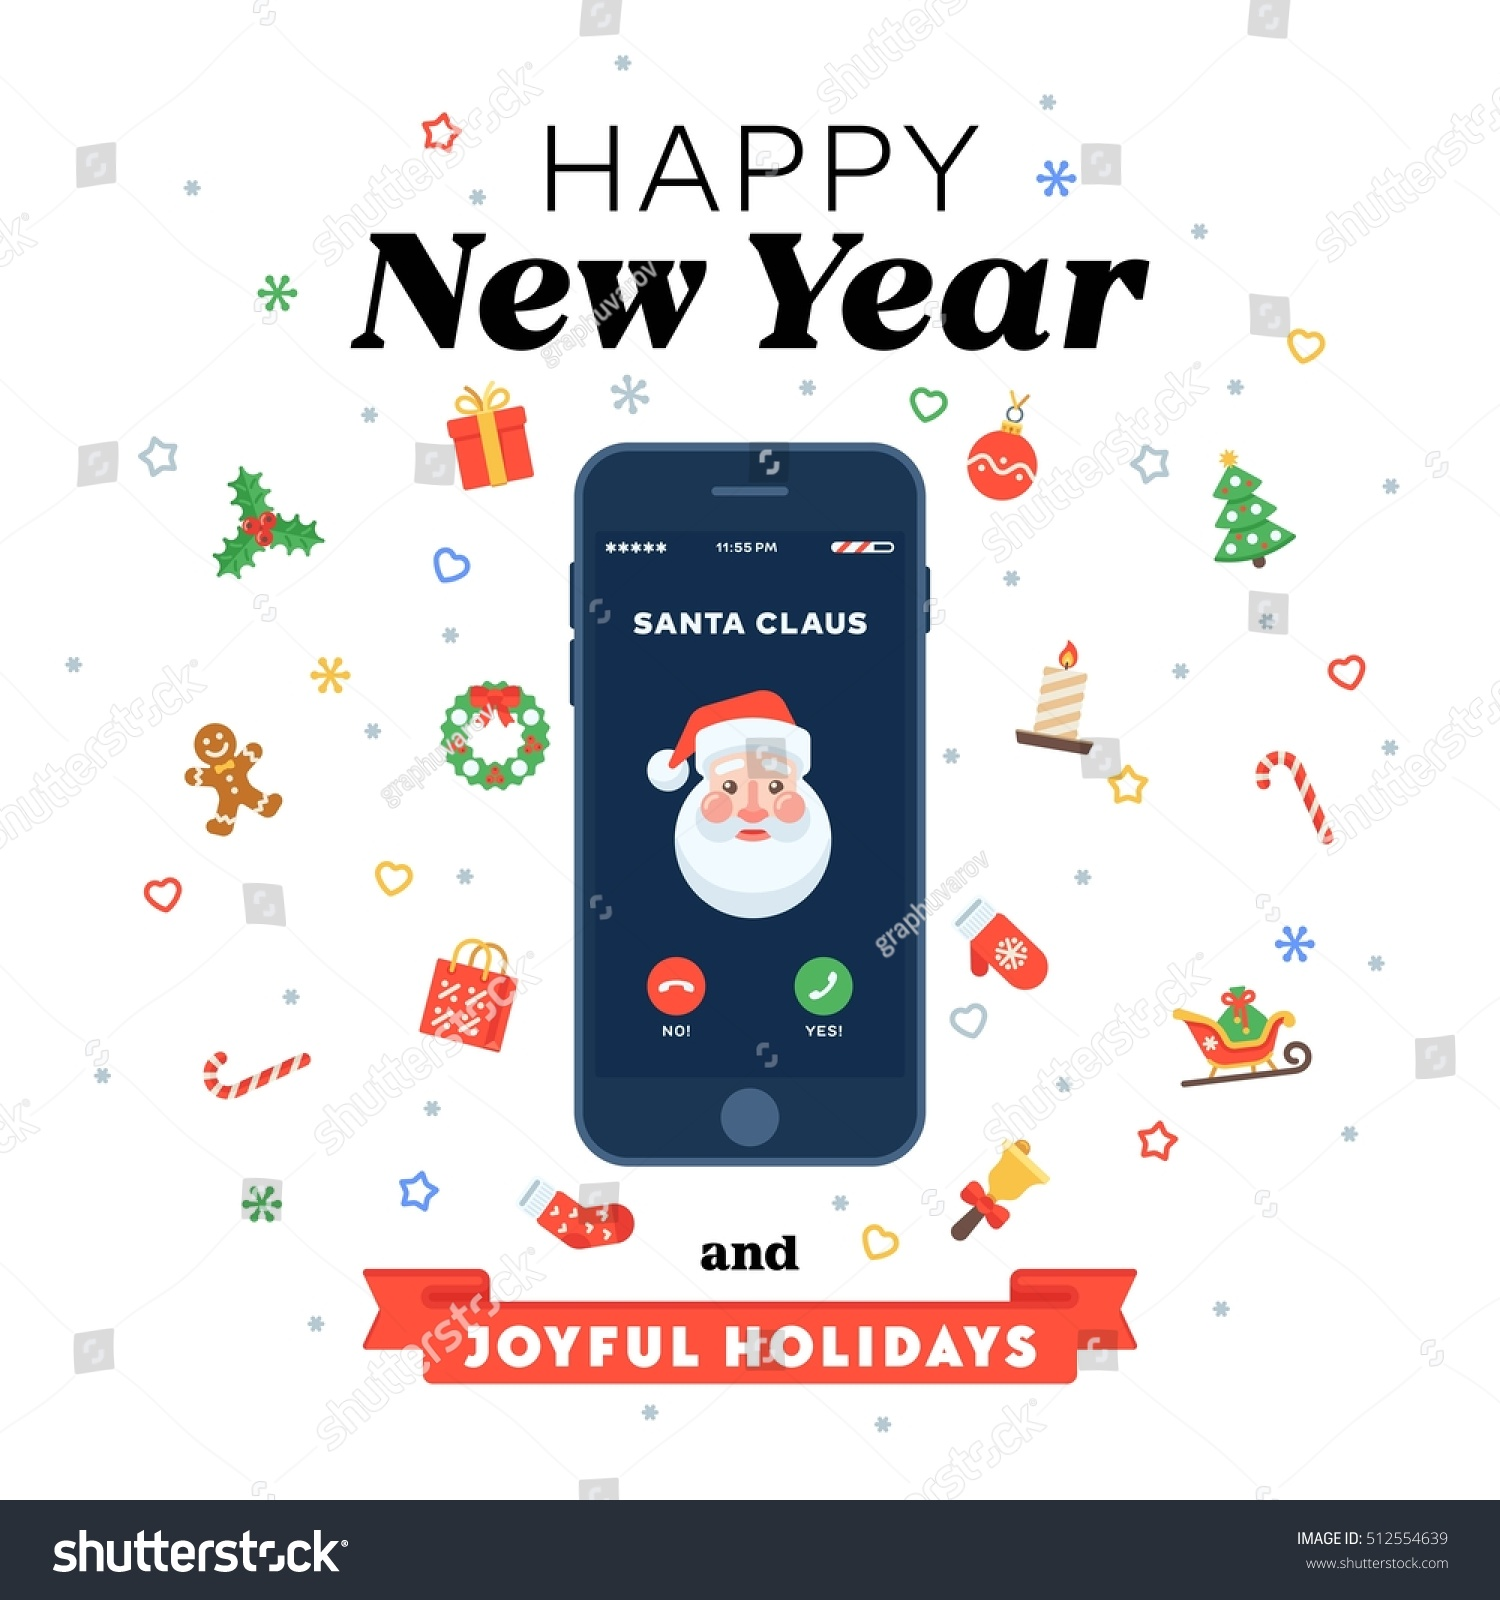 Christmas card phone call santa flat stock vector hd royalty free christmas card with phone call from santa in flat style smartphone with incoming call screen m4hsunfo